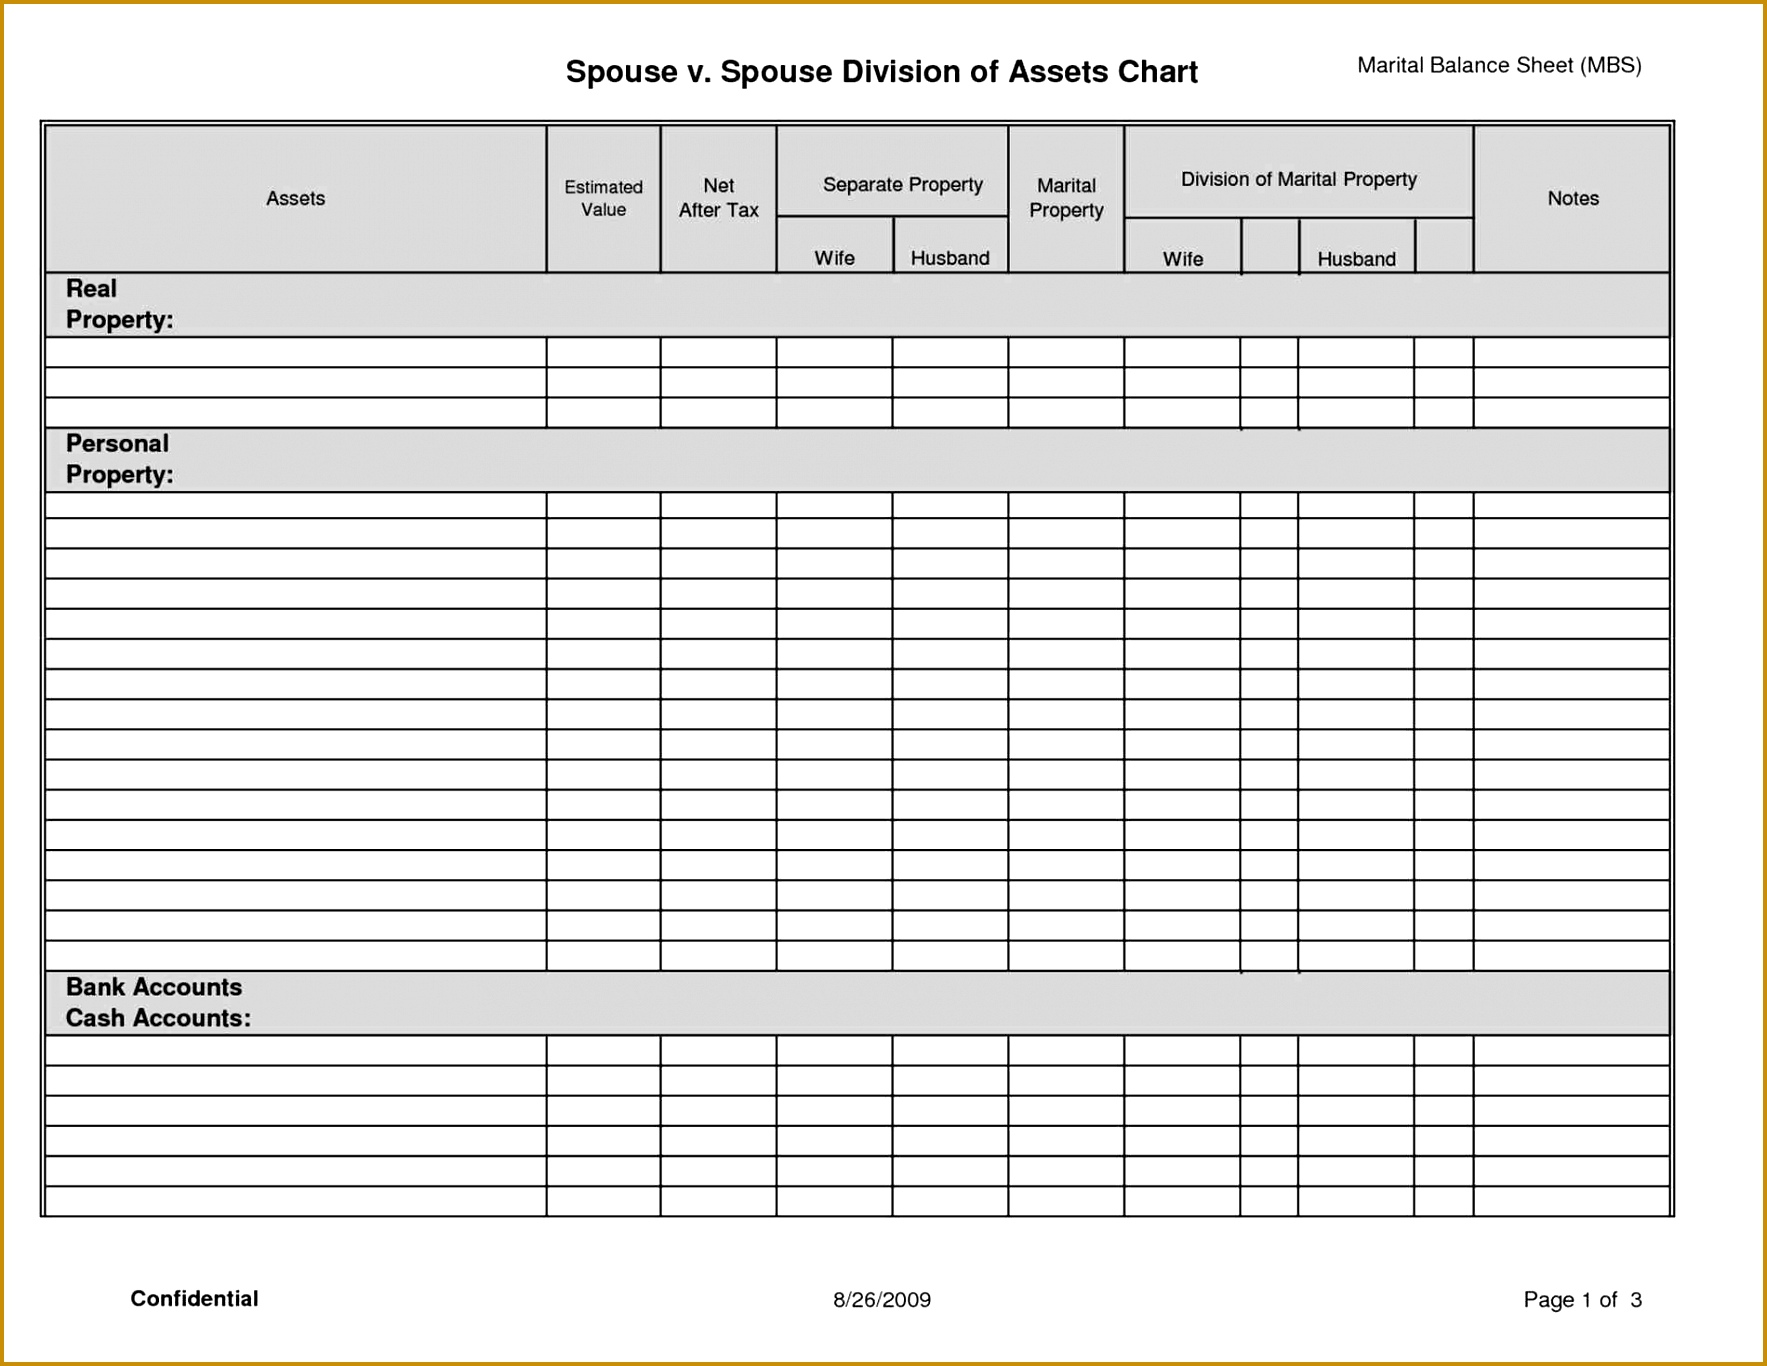 petty Petty Cash Balance Sheet Template cash reconciliation form template accountingpetty free microsoft word action plan 13661767